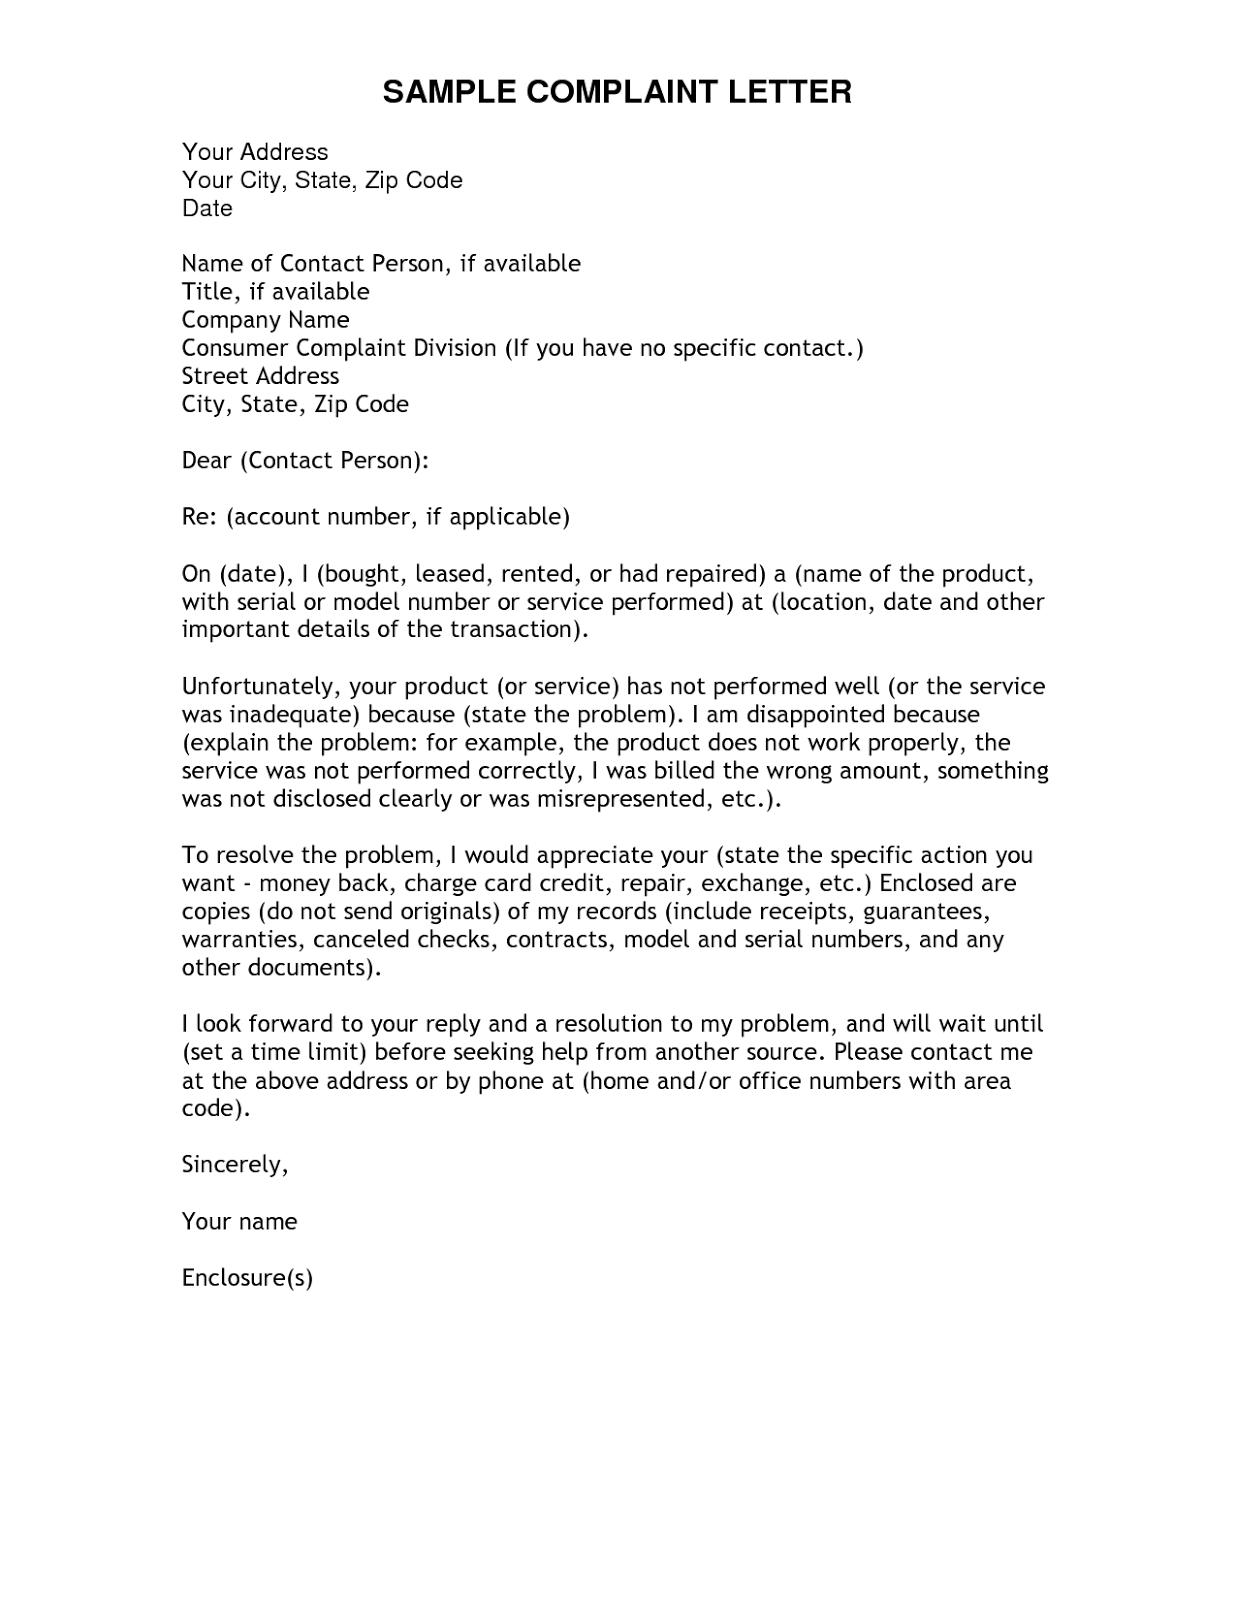 complaint letter writing format how to write a complaint letter to a company with sample example